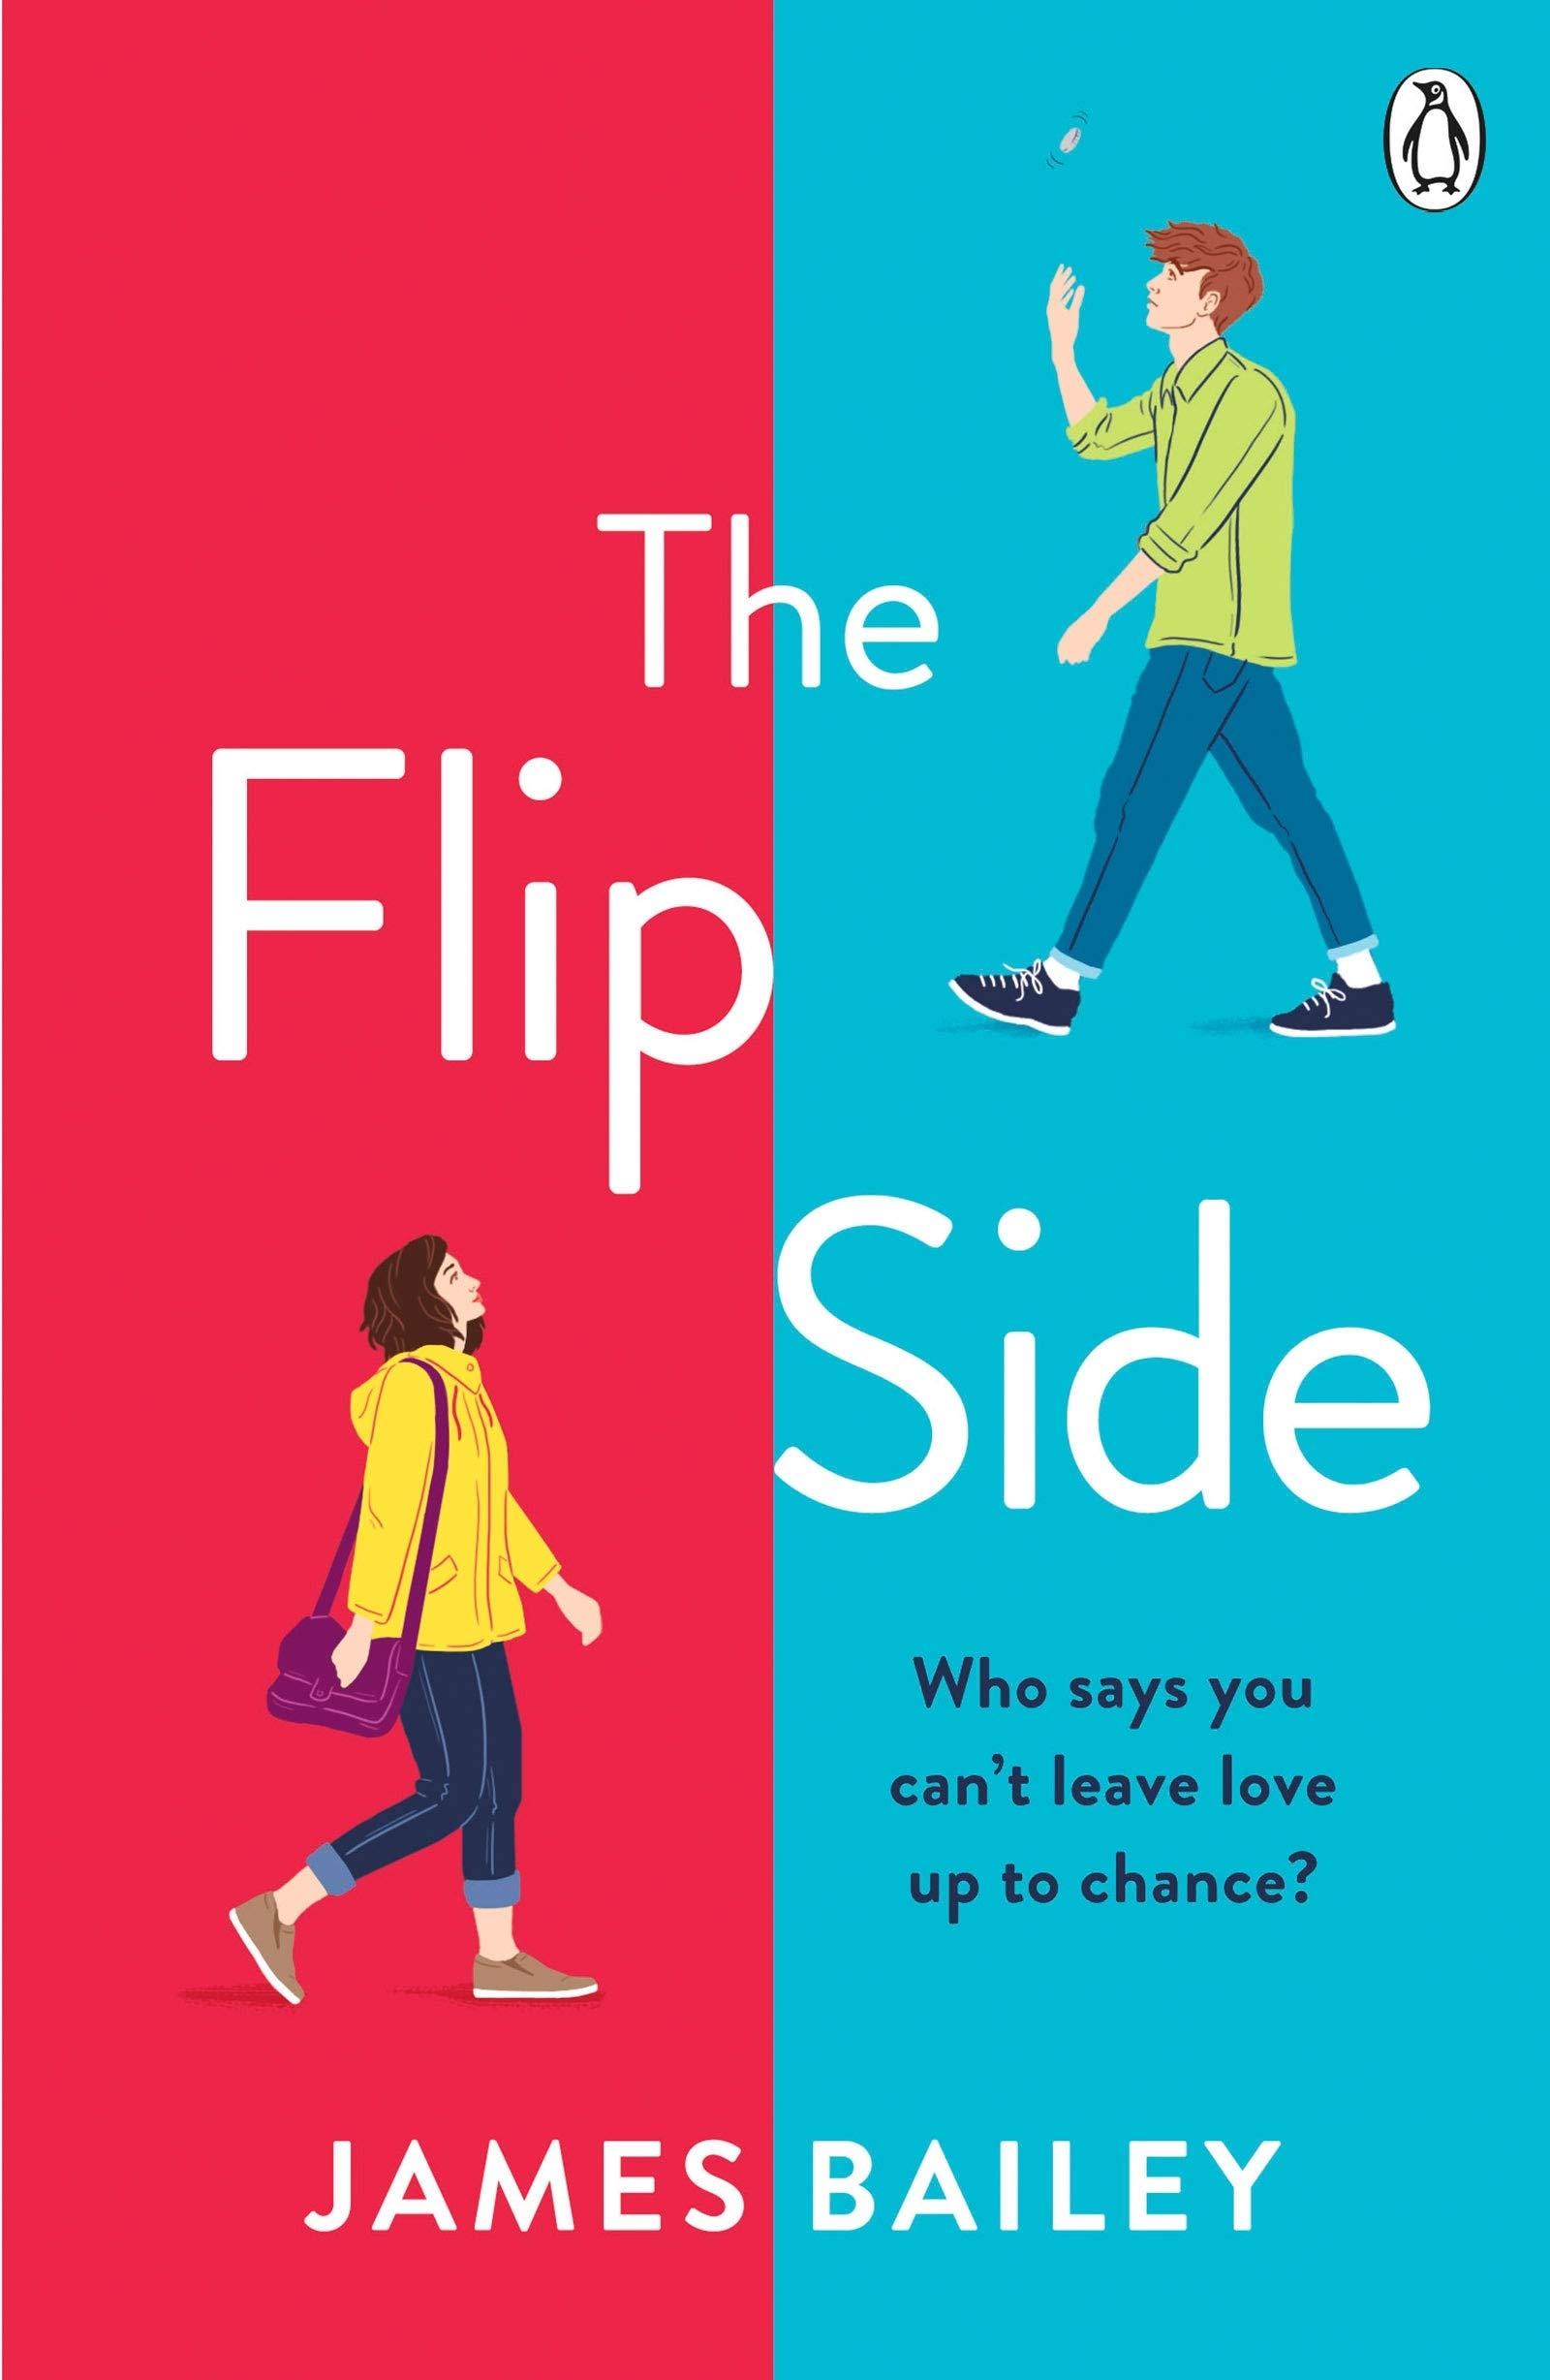 The Flip Side Review